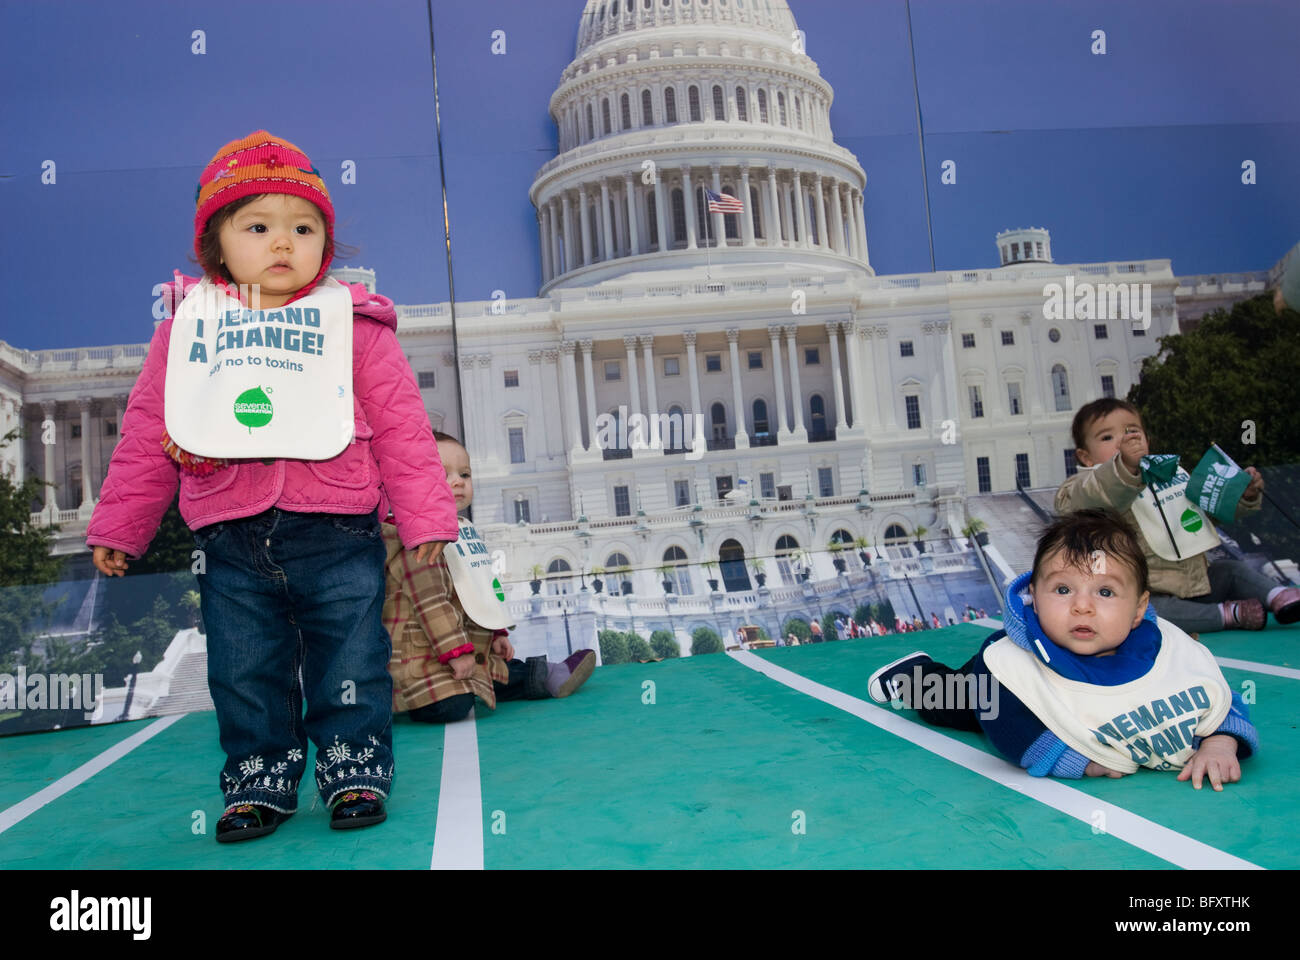 Toddlers promote the Million Baby Crawl in Madison Square Park  in New York - Stock Image